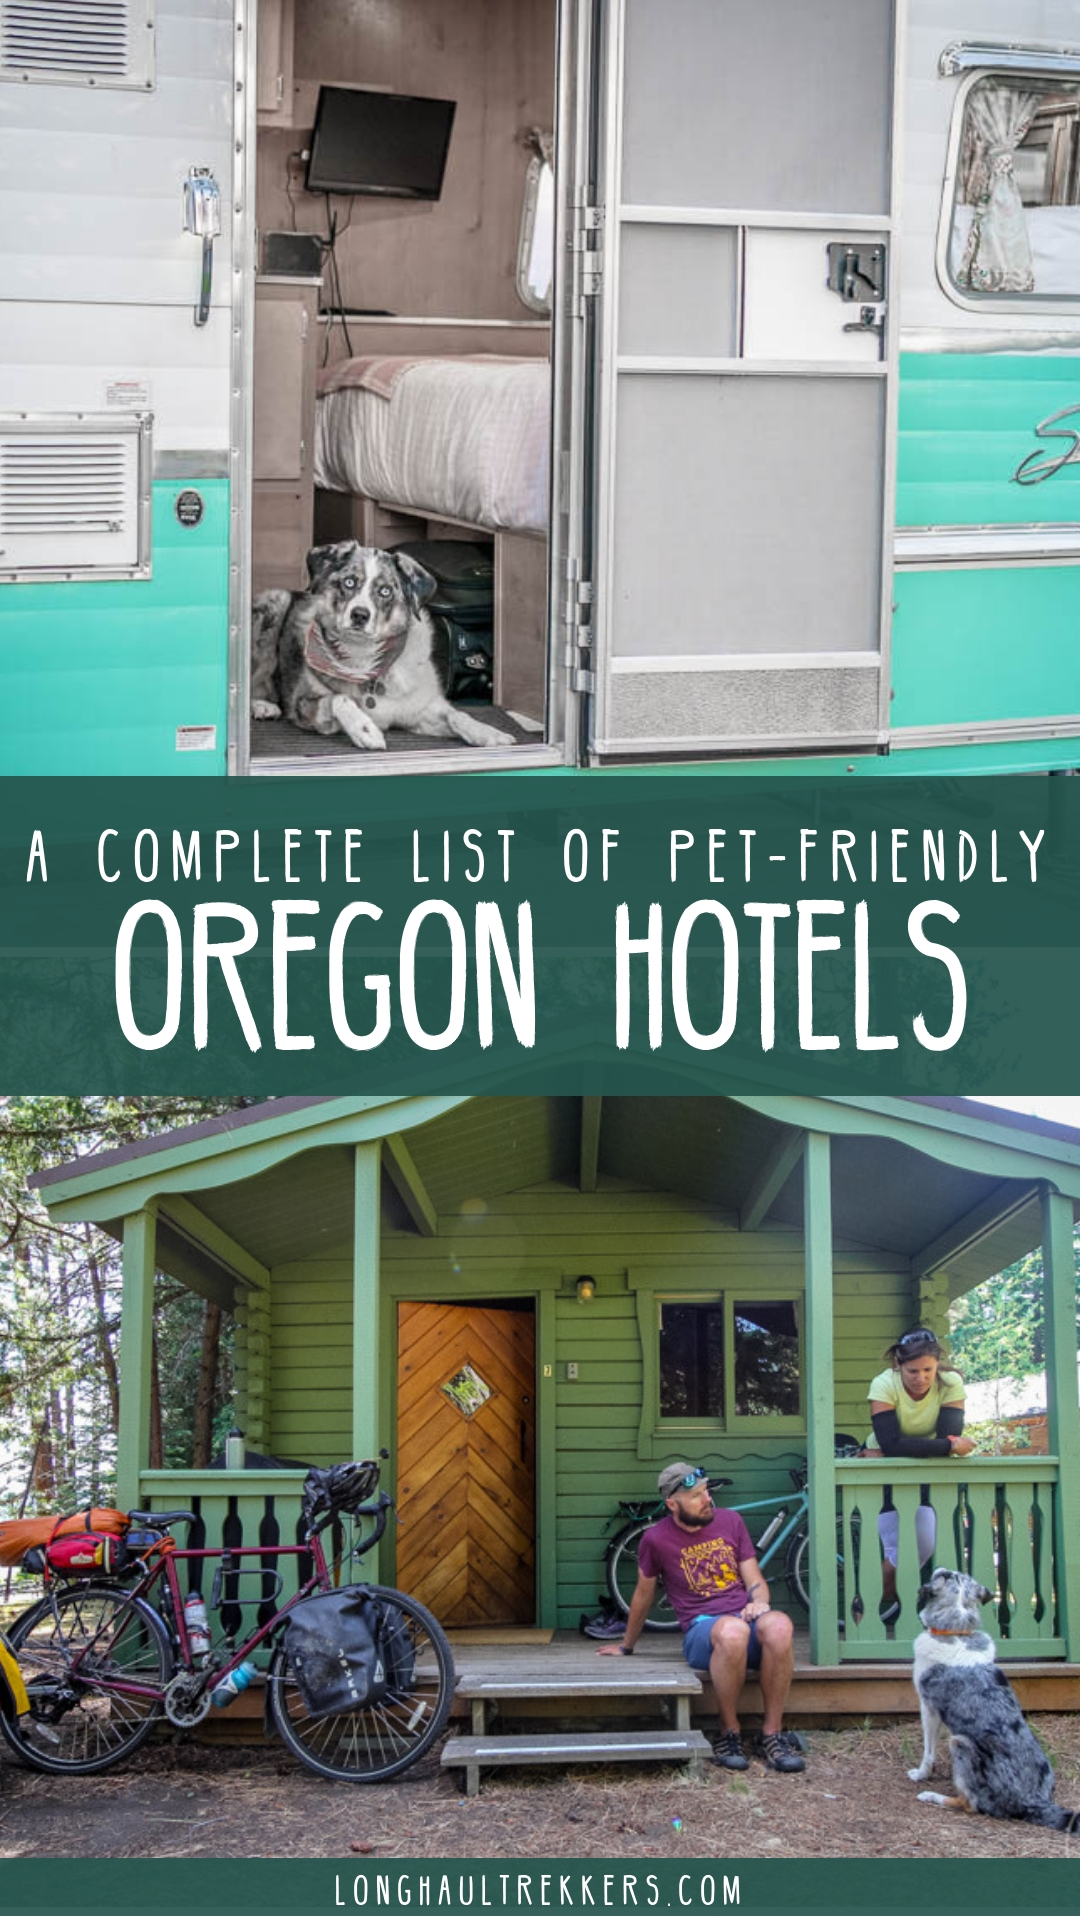 Oregon is home to an abundance of pet friendly hotels. Check out our list to see some of our favorite pet friendly hotels in Oregon.